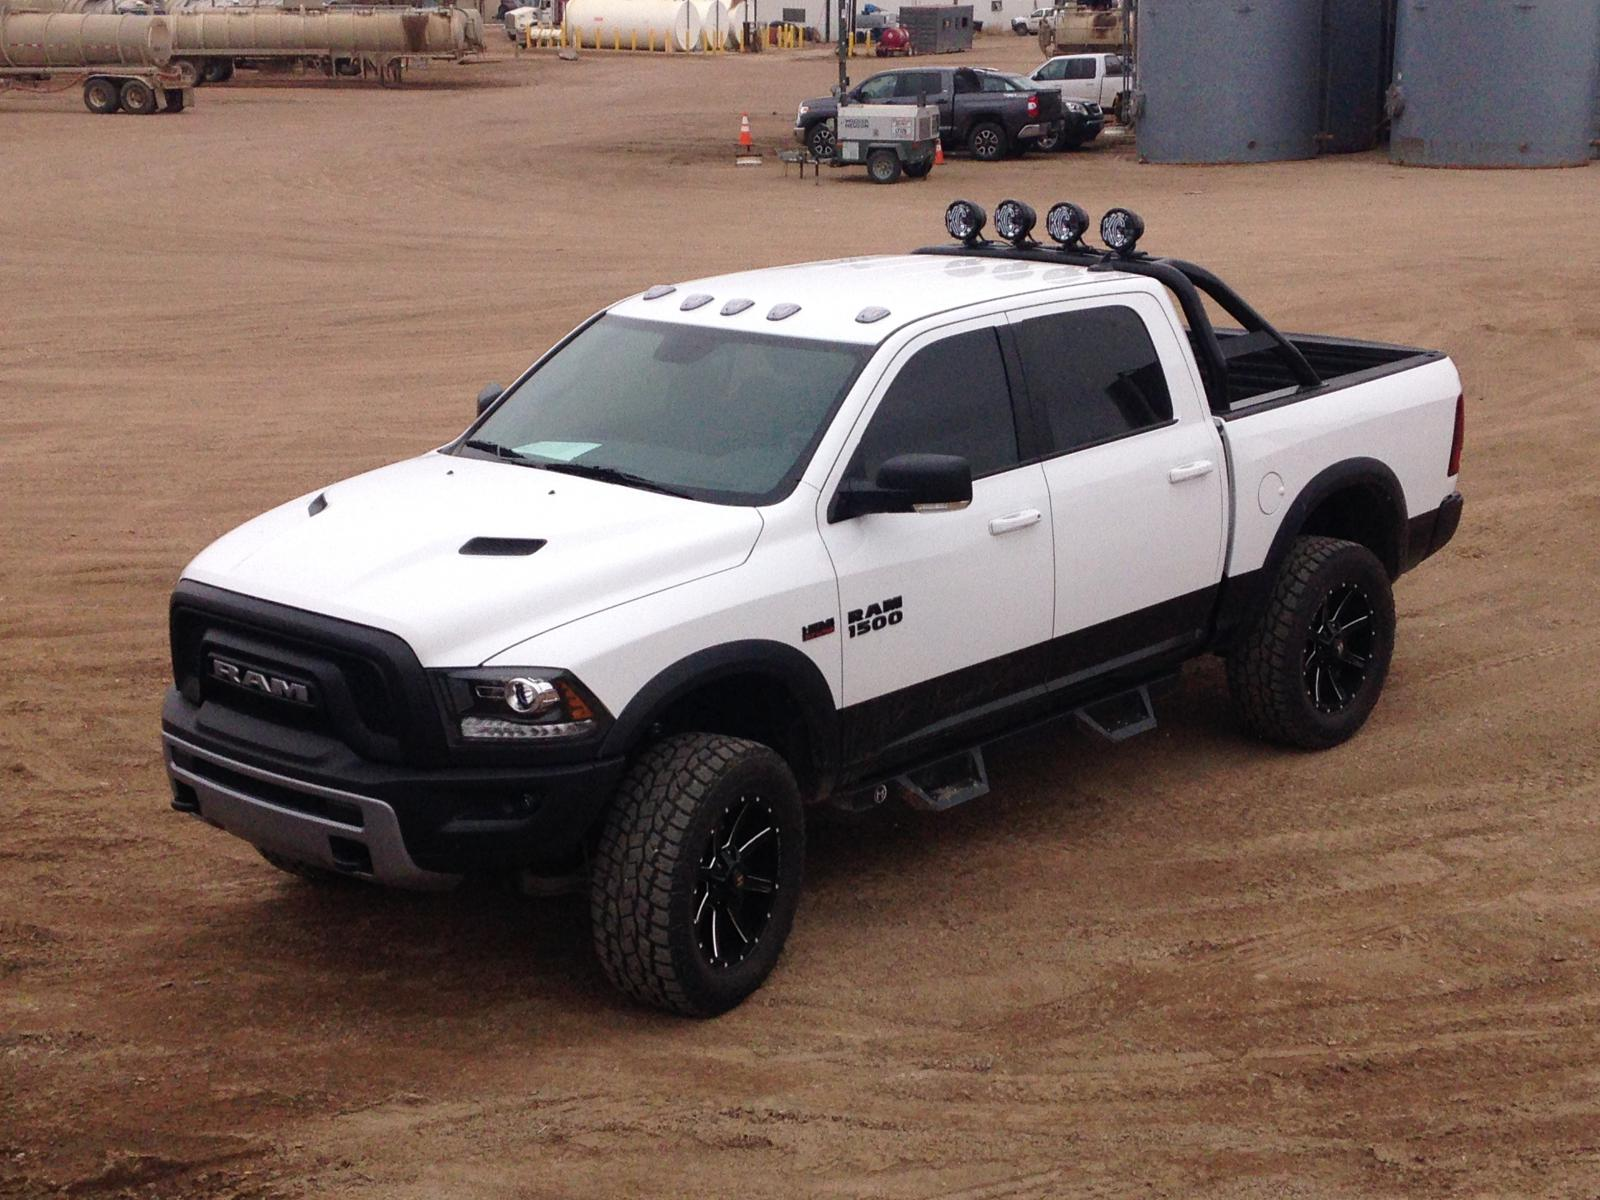 2018 Dodge Rebel >> Ram Rebel Modifications and Accessories - Page 4 - Ram Rebel Forum